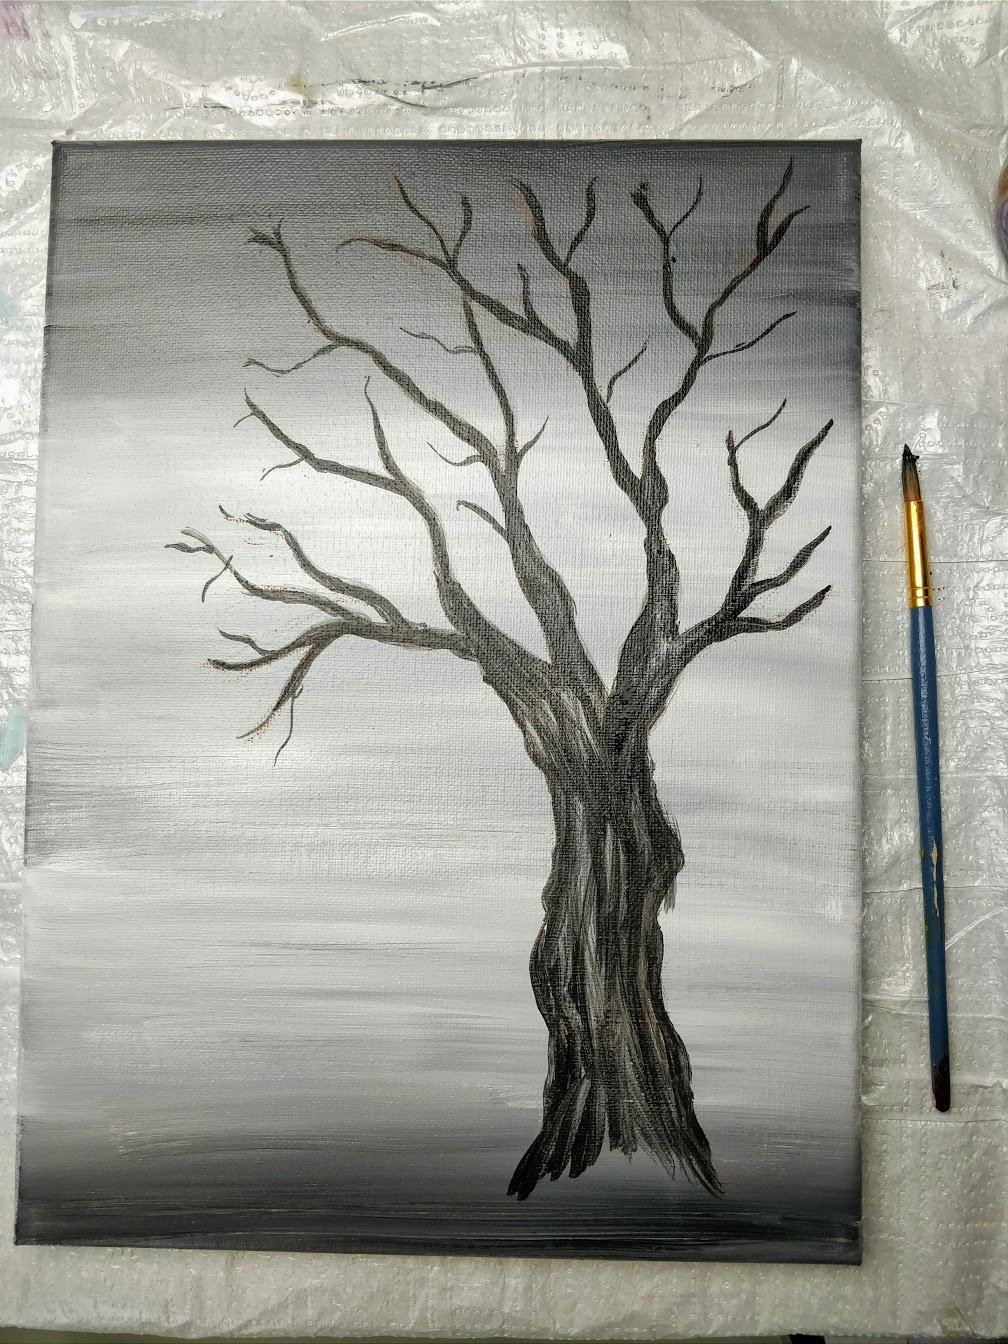 how to draw cherry tree branch and trunk acrylic